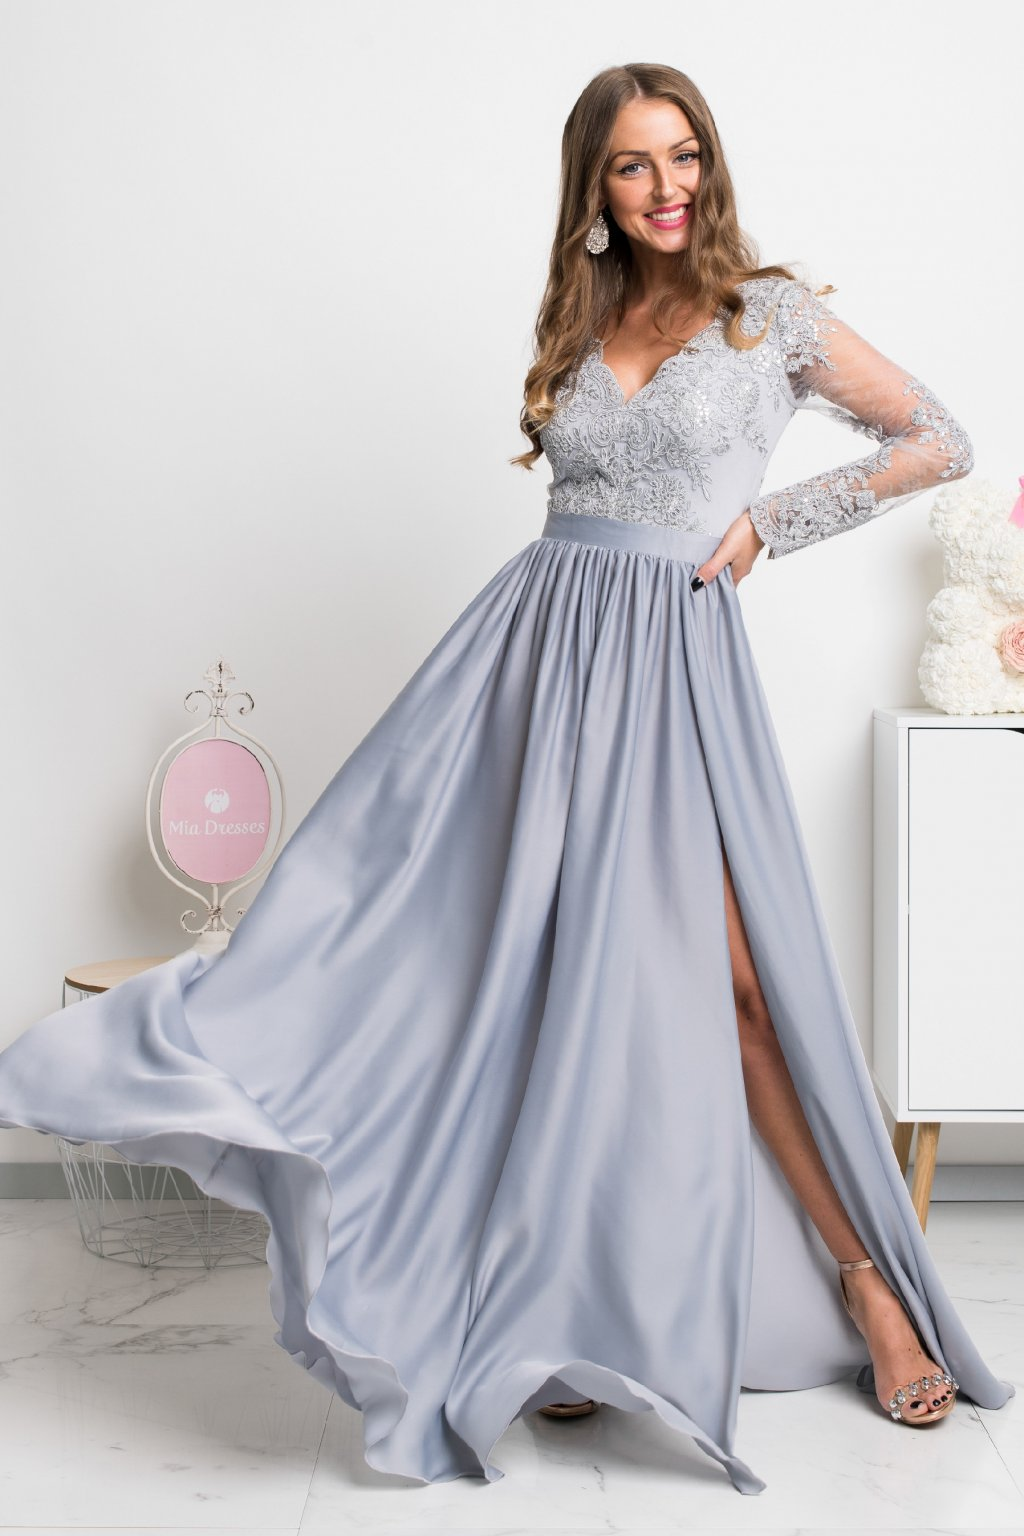 Gray lace and satin formal dress